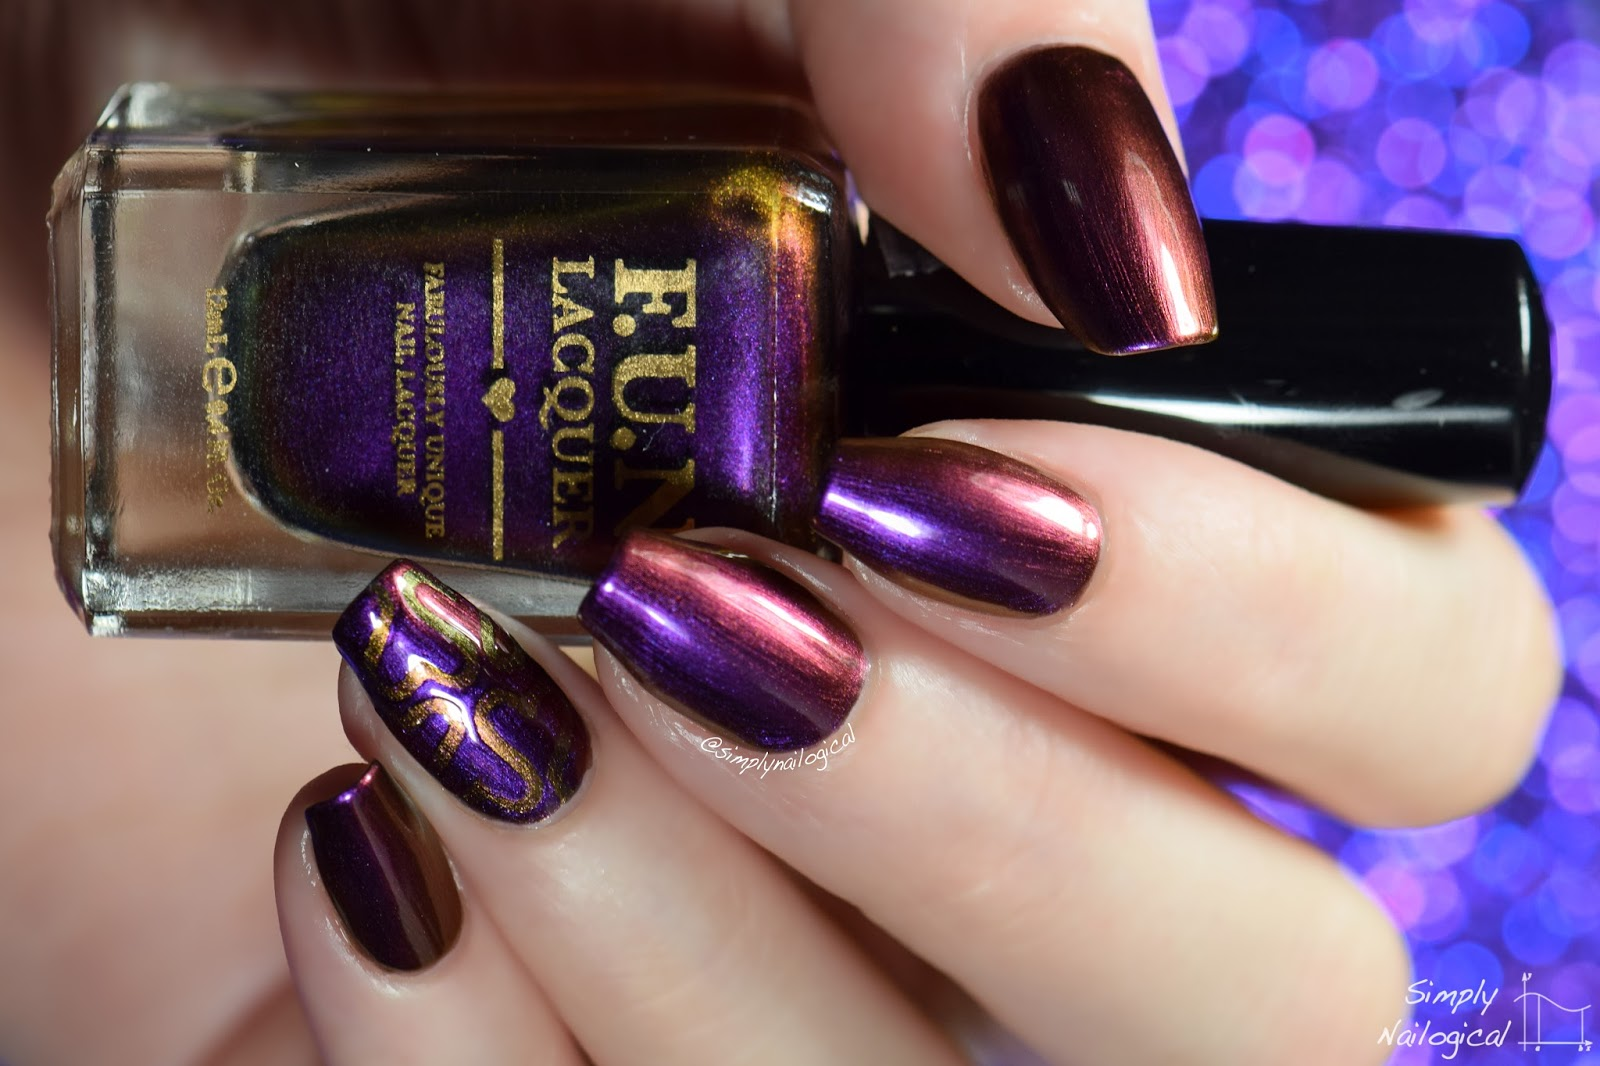 FUN Lacquer 2015 Love collection - Storge